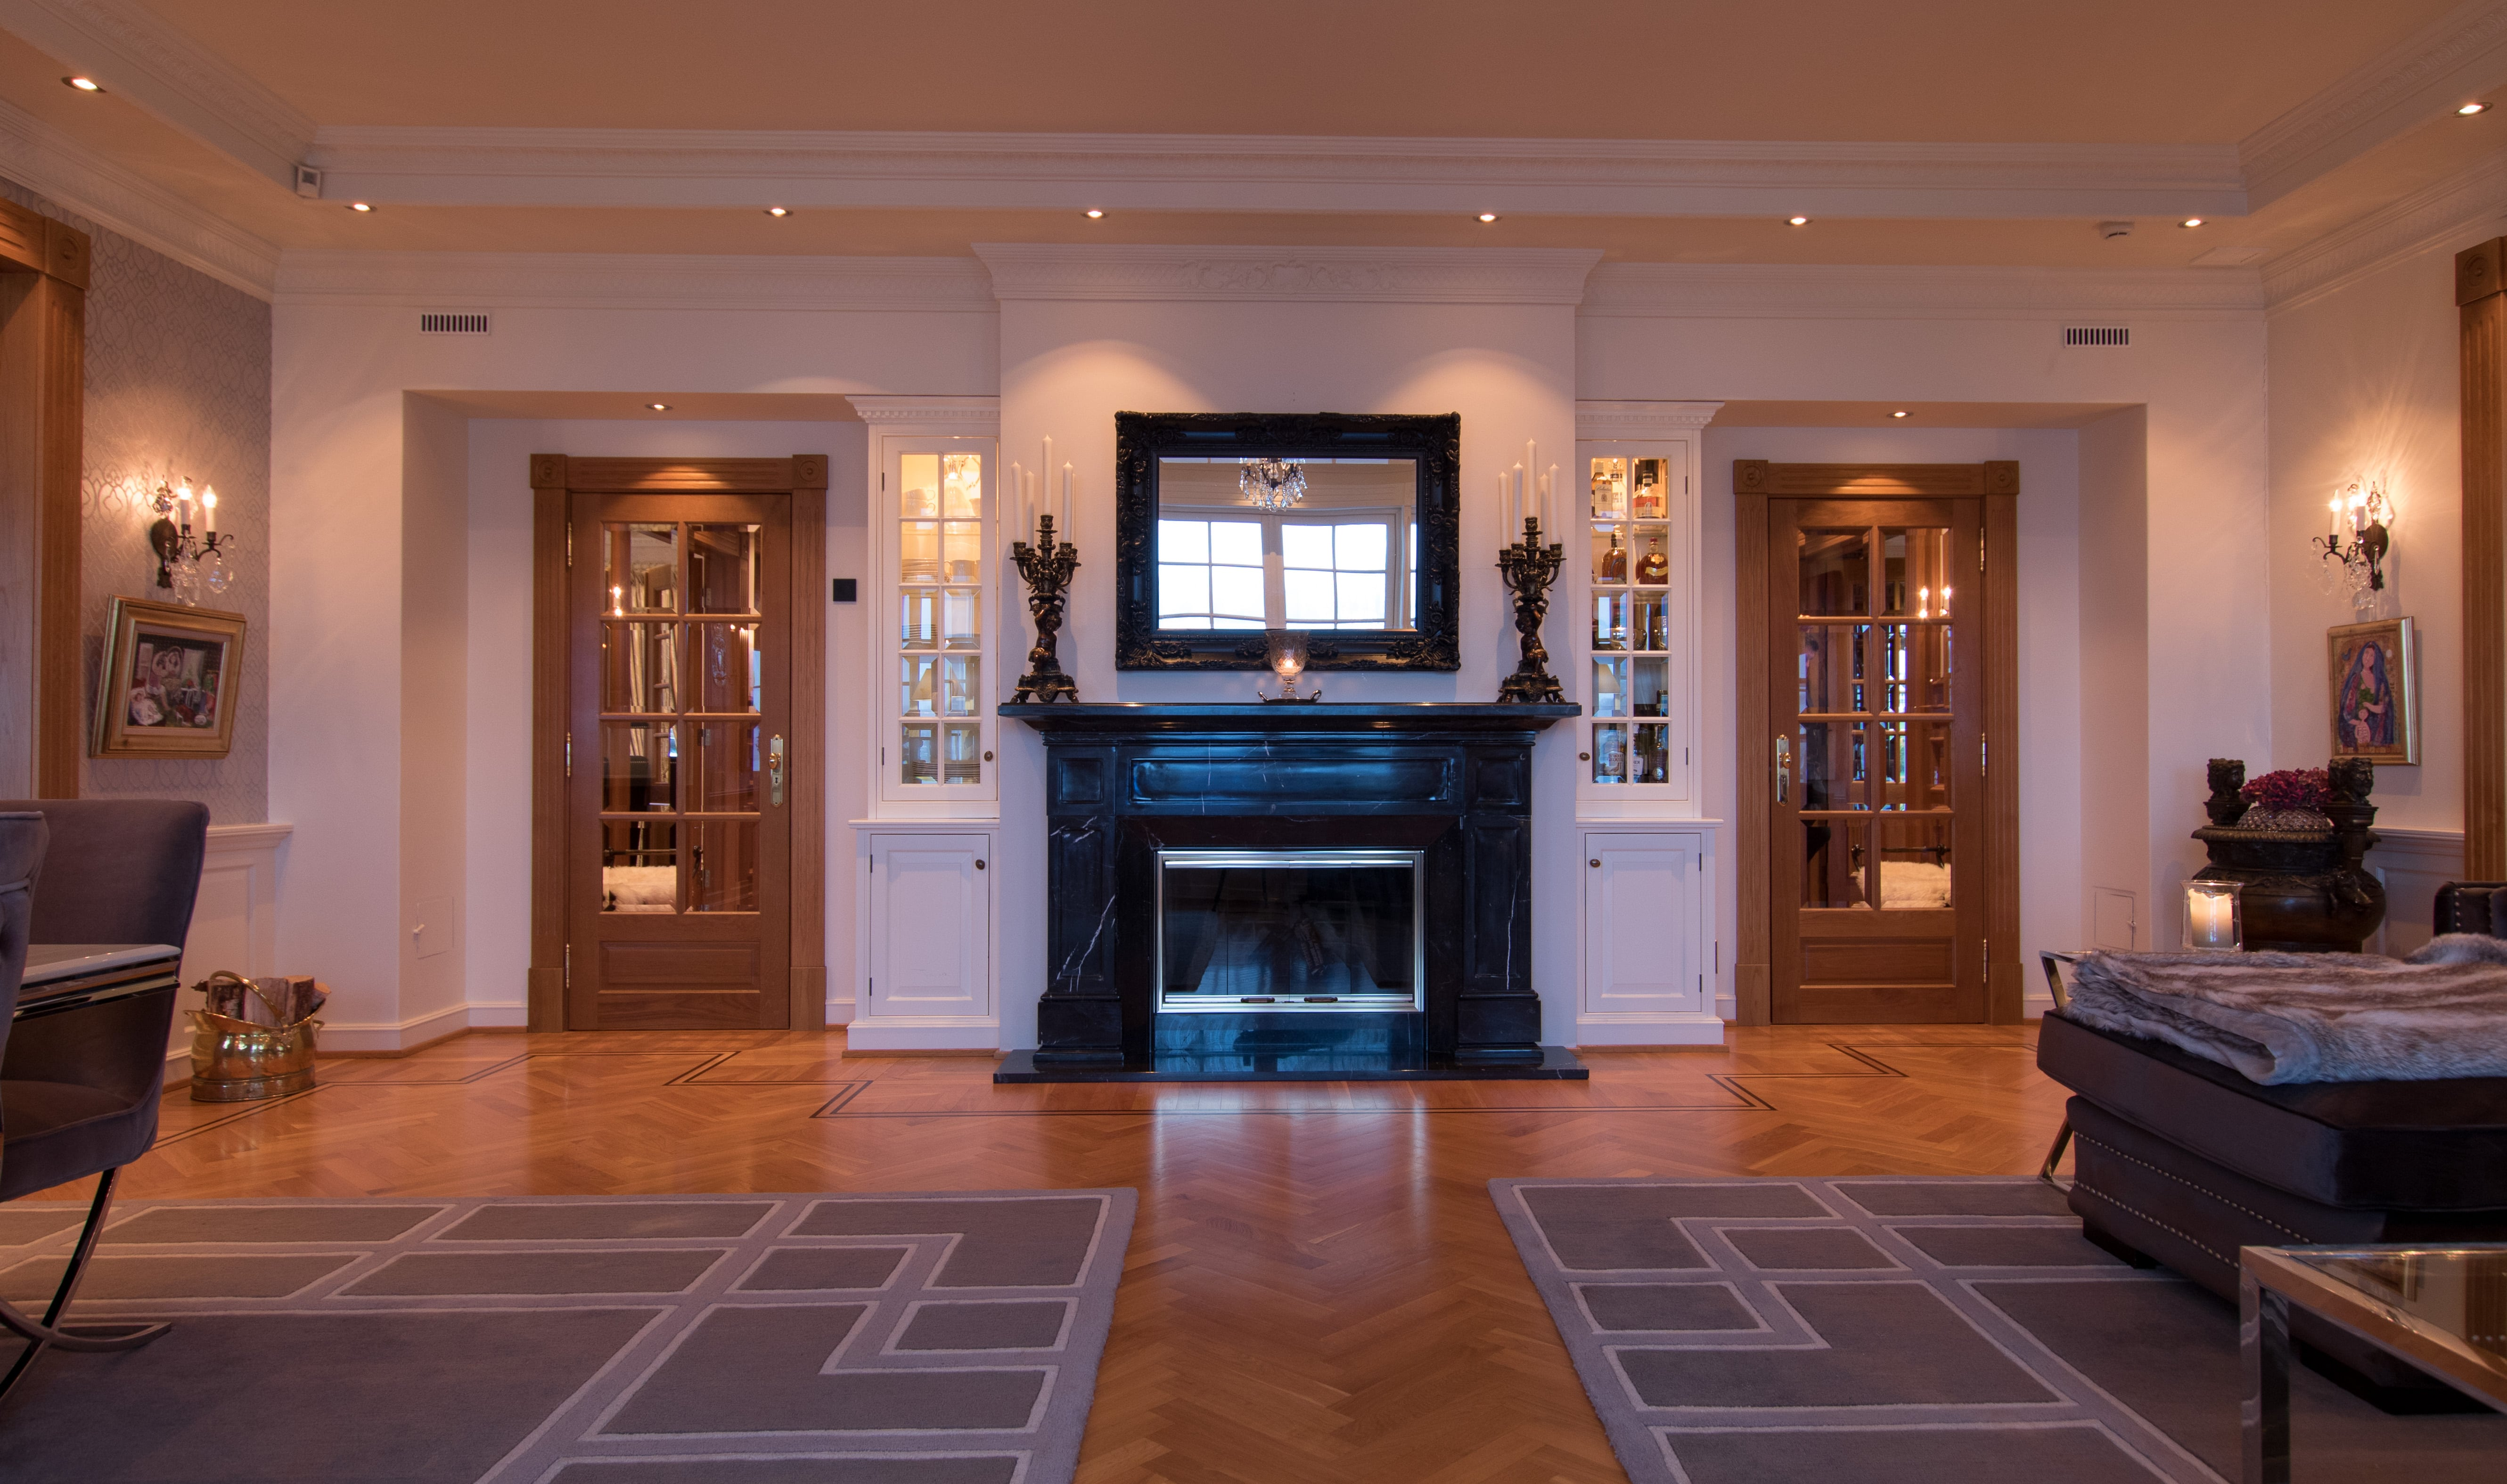 Big living room with fireplace.